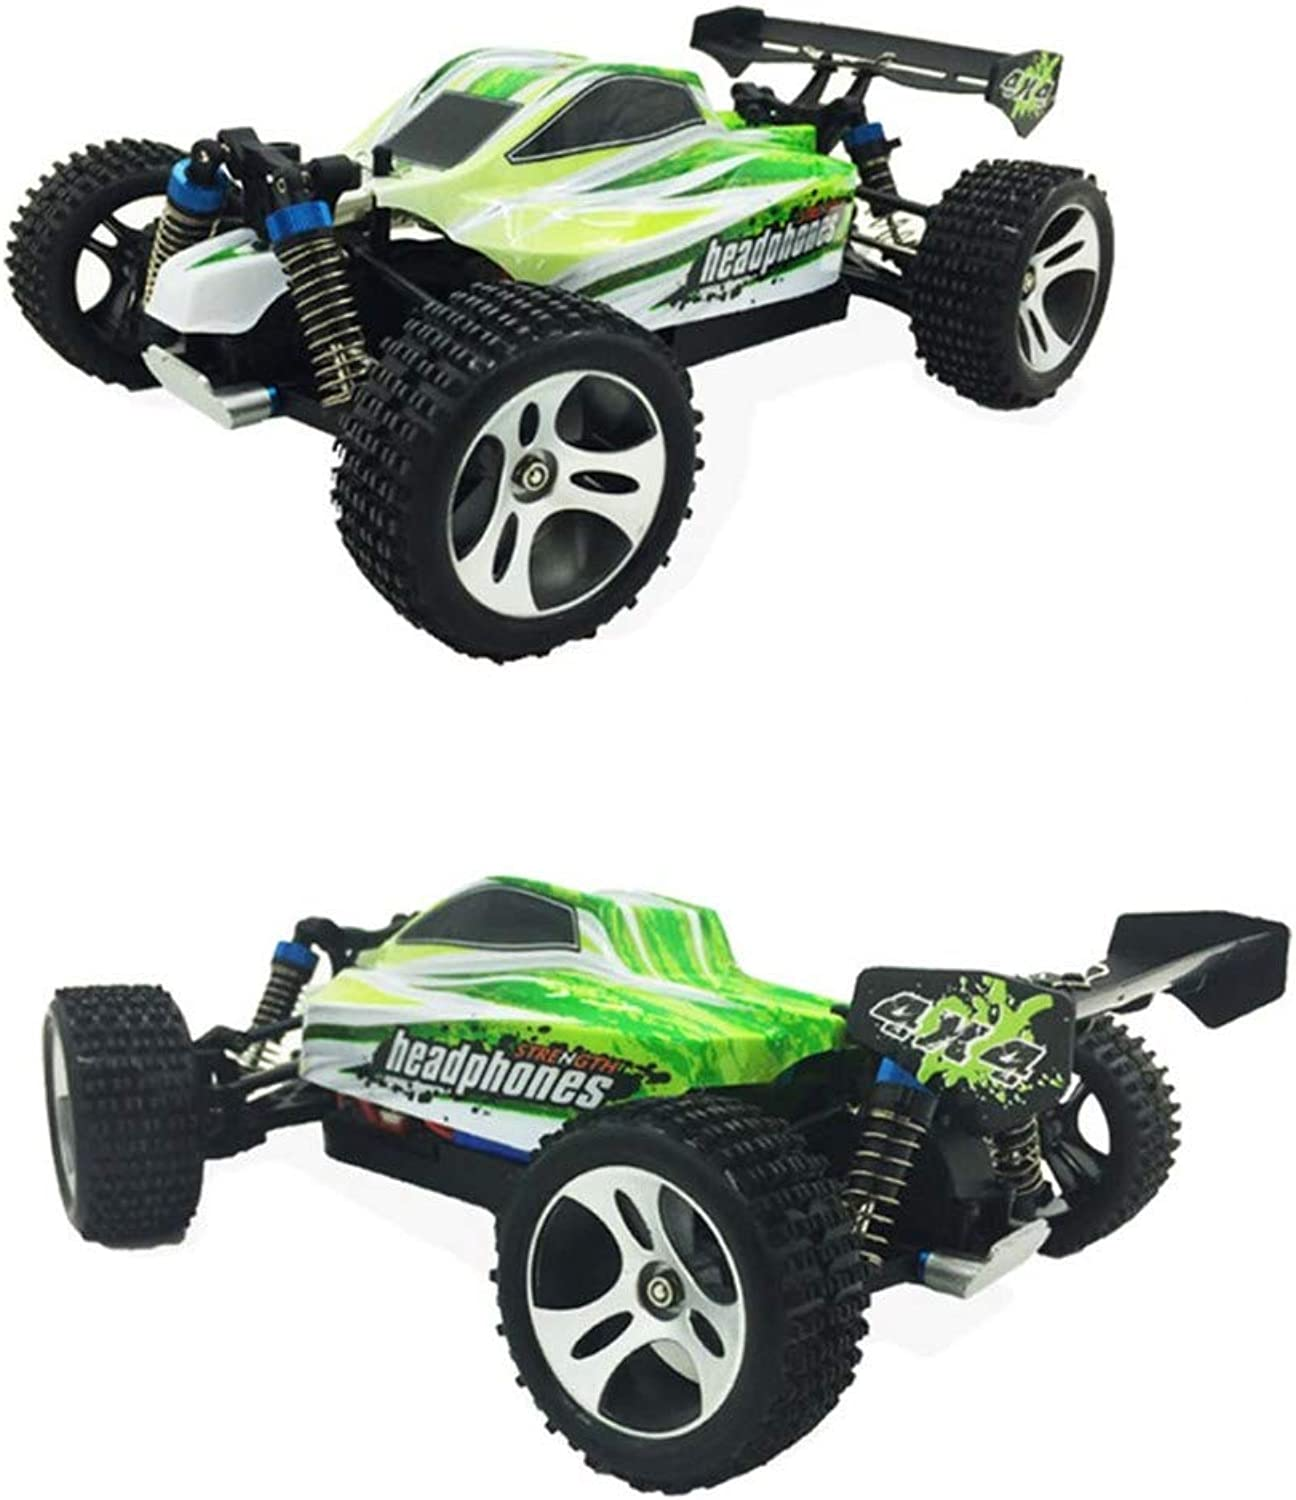 SPFTOY Climbing Car Toys 1 18 Scale 2.4G 4WD Remote Control Car 70KM H High speed RC Car Off-road Vehicle Gift